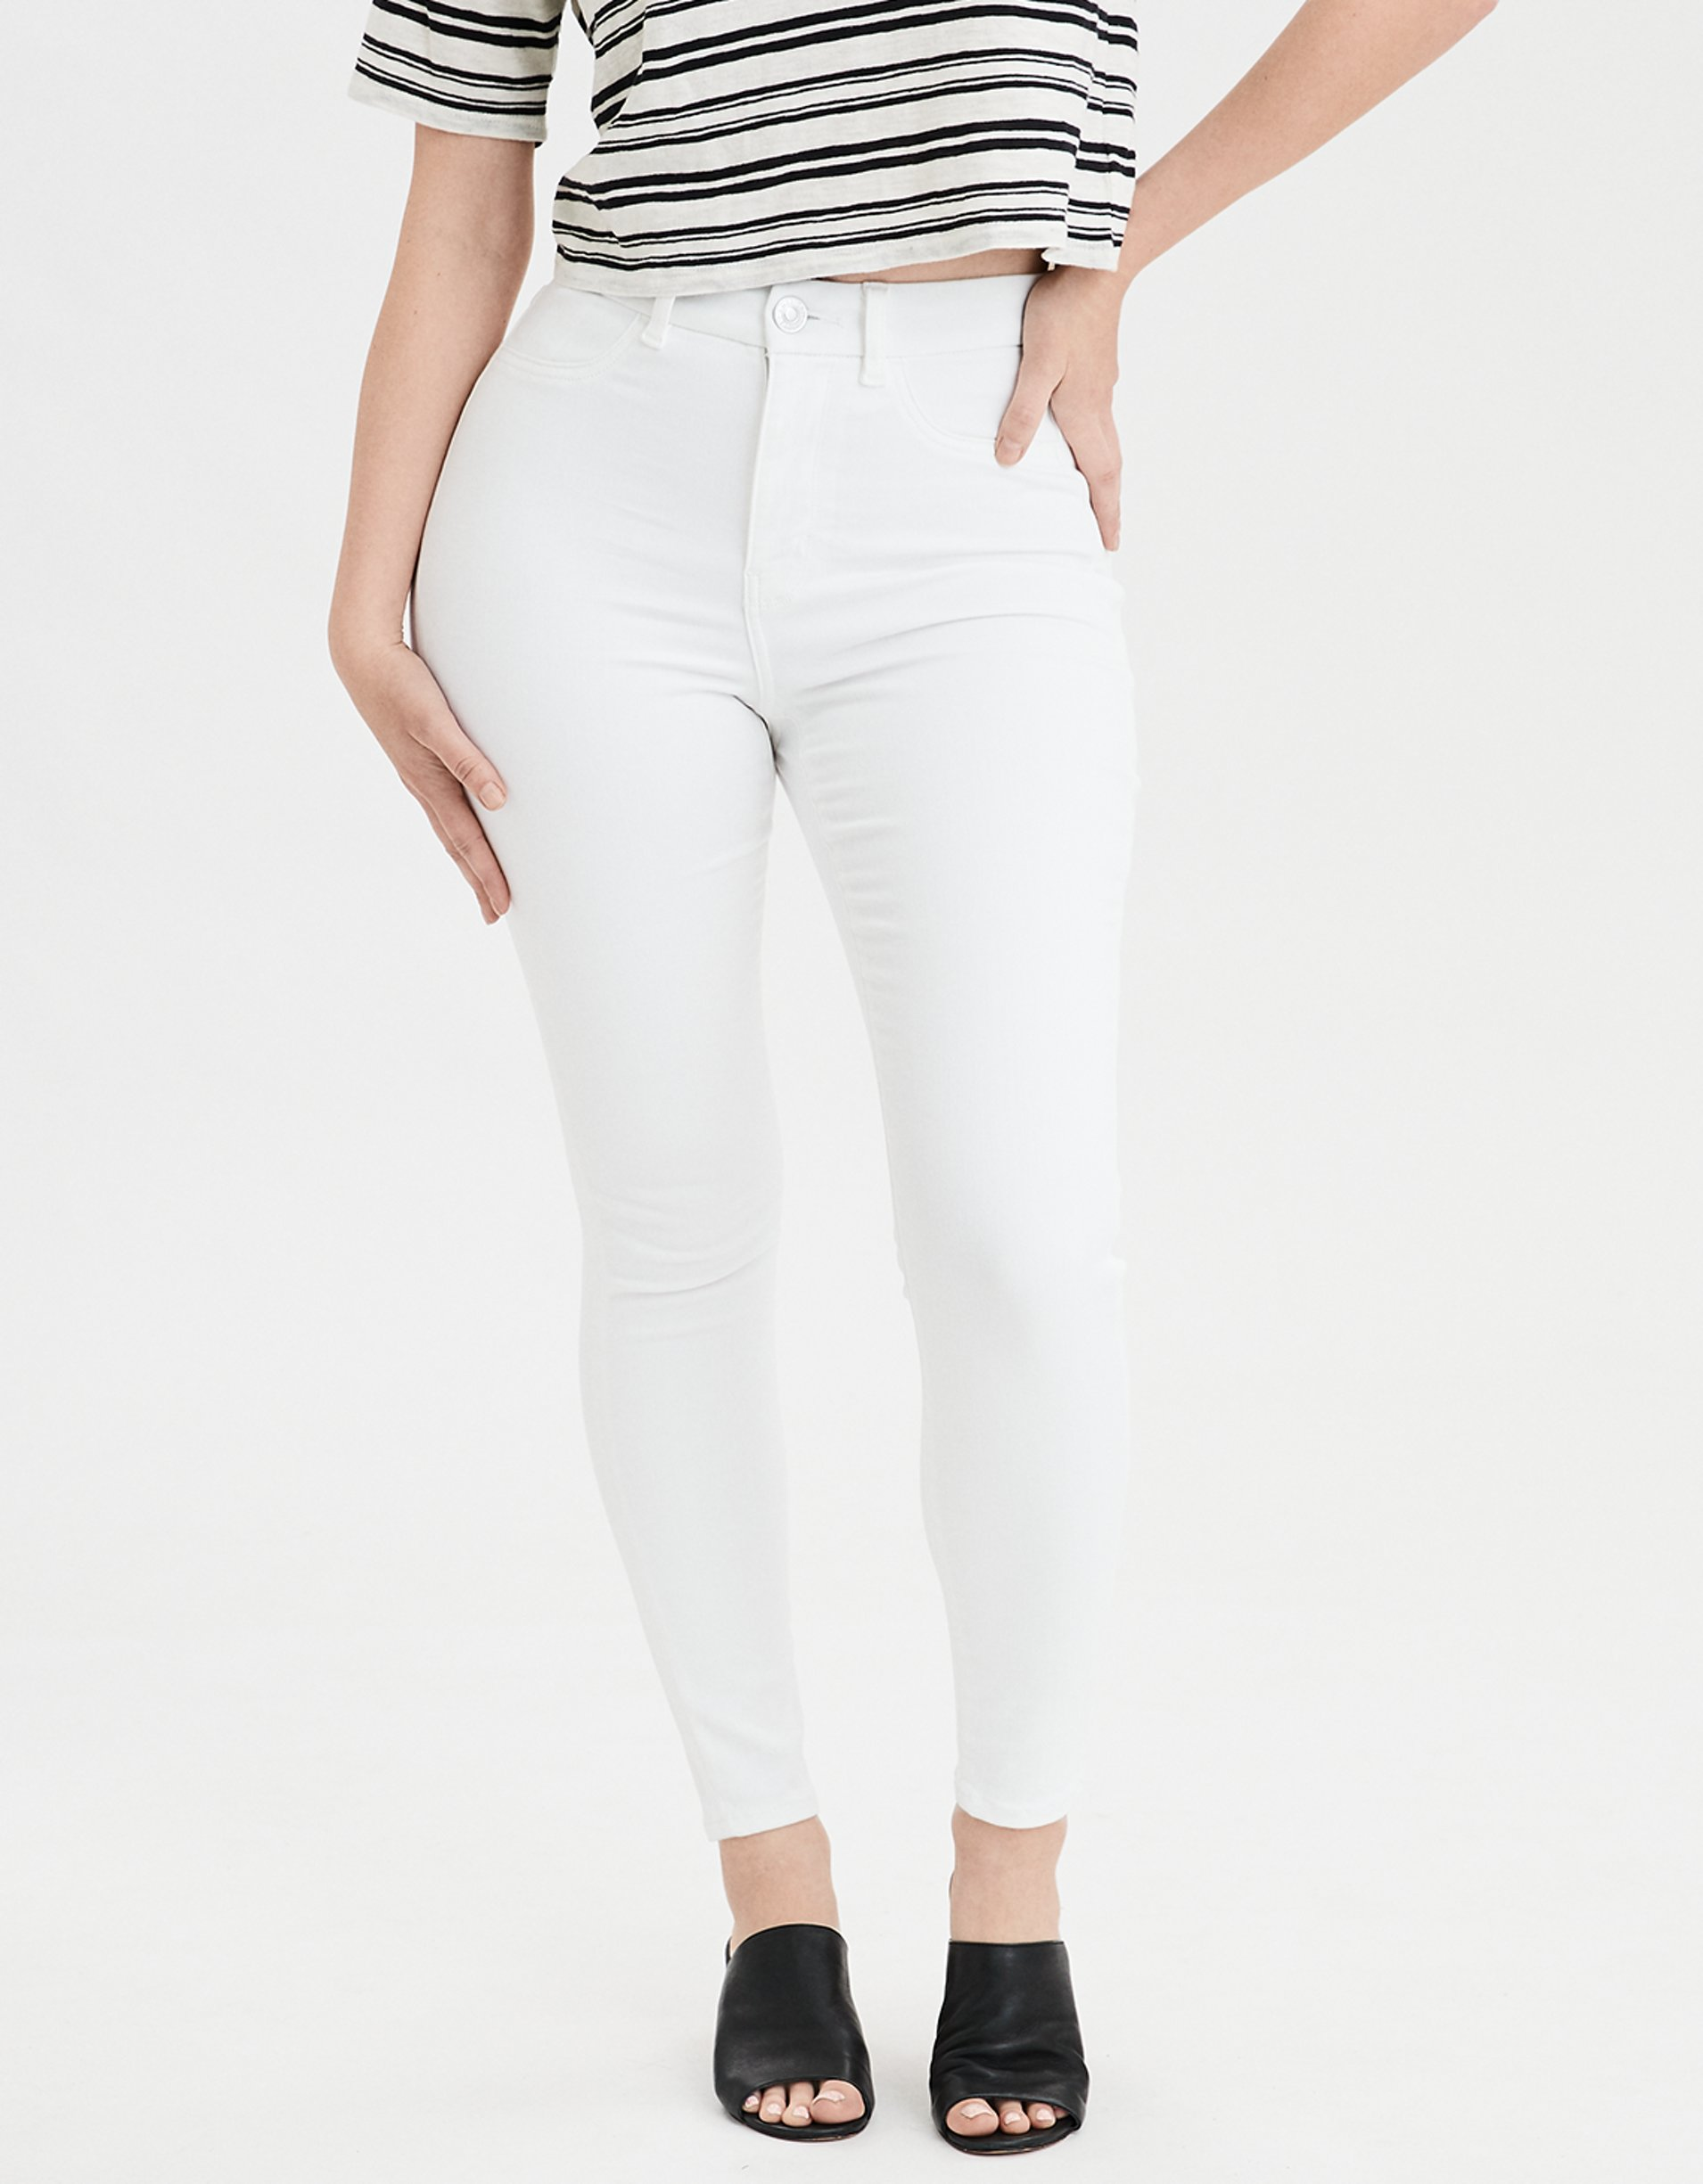 .99 Women's jeans on sale at American Eagle + Free shipping at !